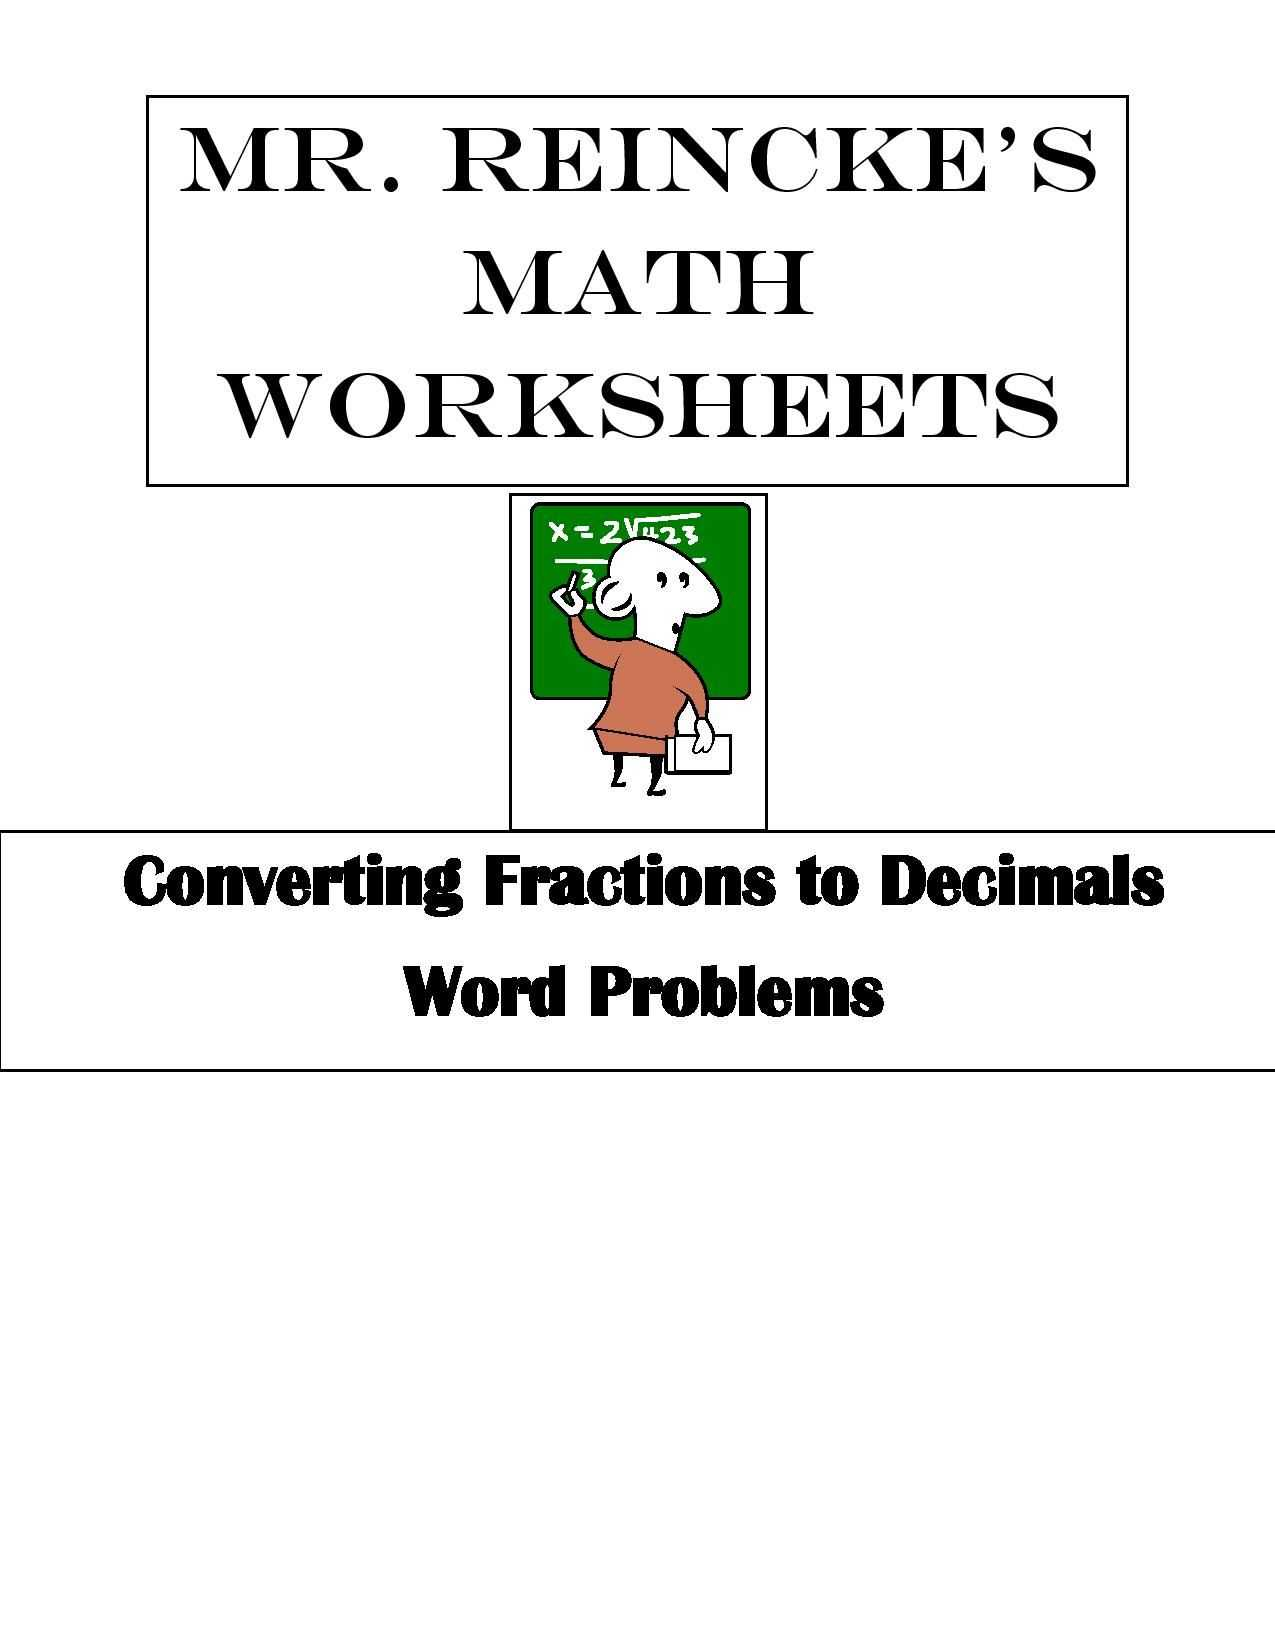 Operations with Decimals Review Worksheet Answer Key together with Converting Fractions to Decimals Word Problems 4 Worksheets